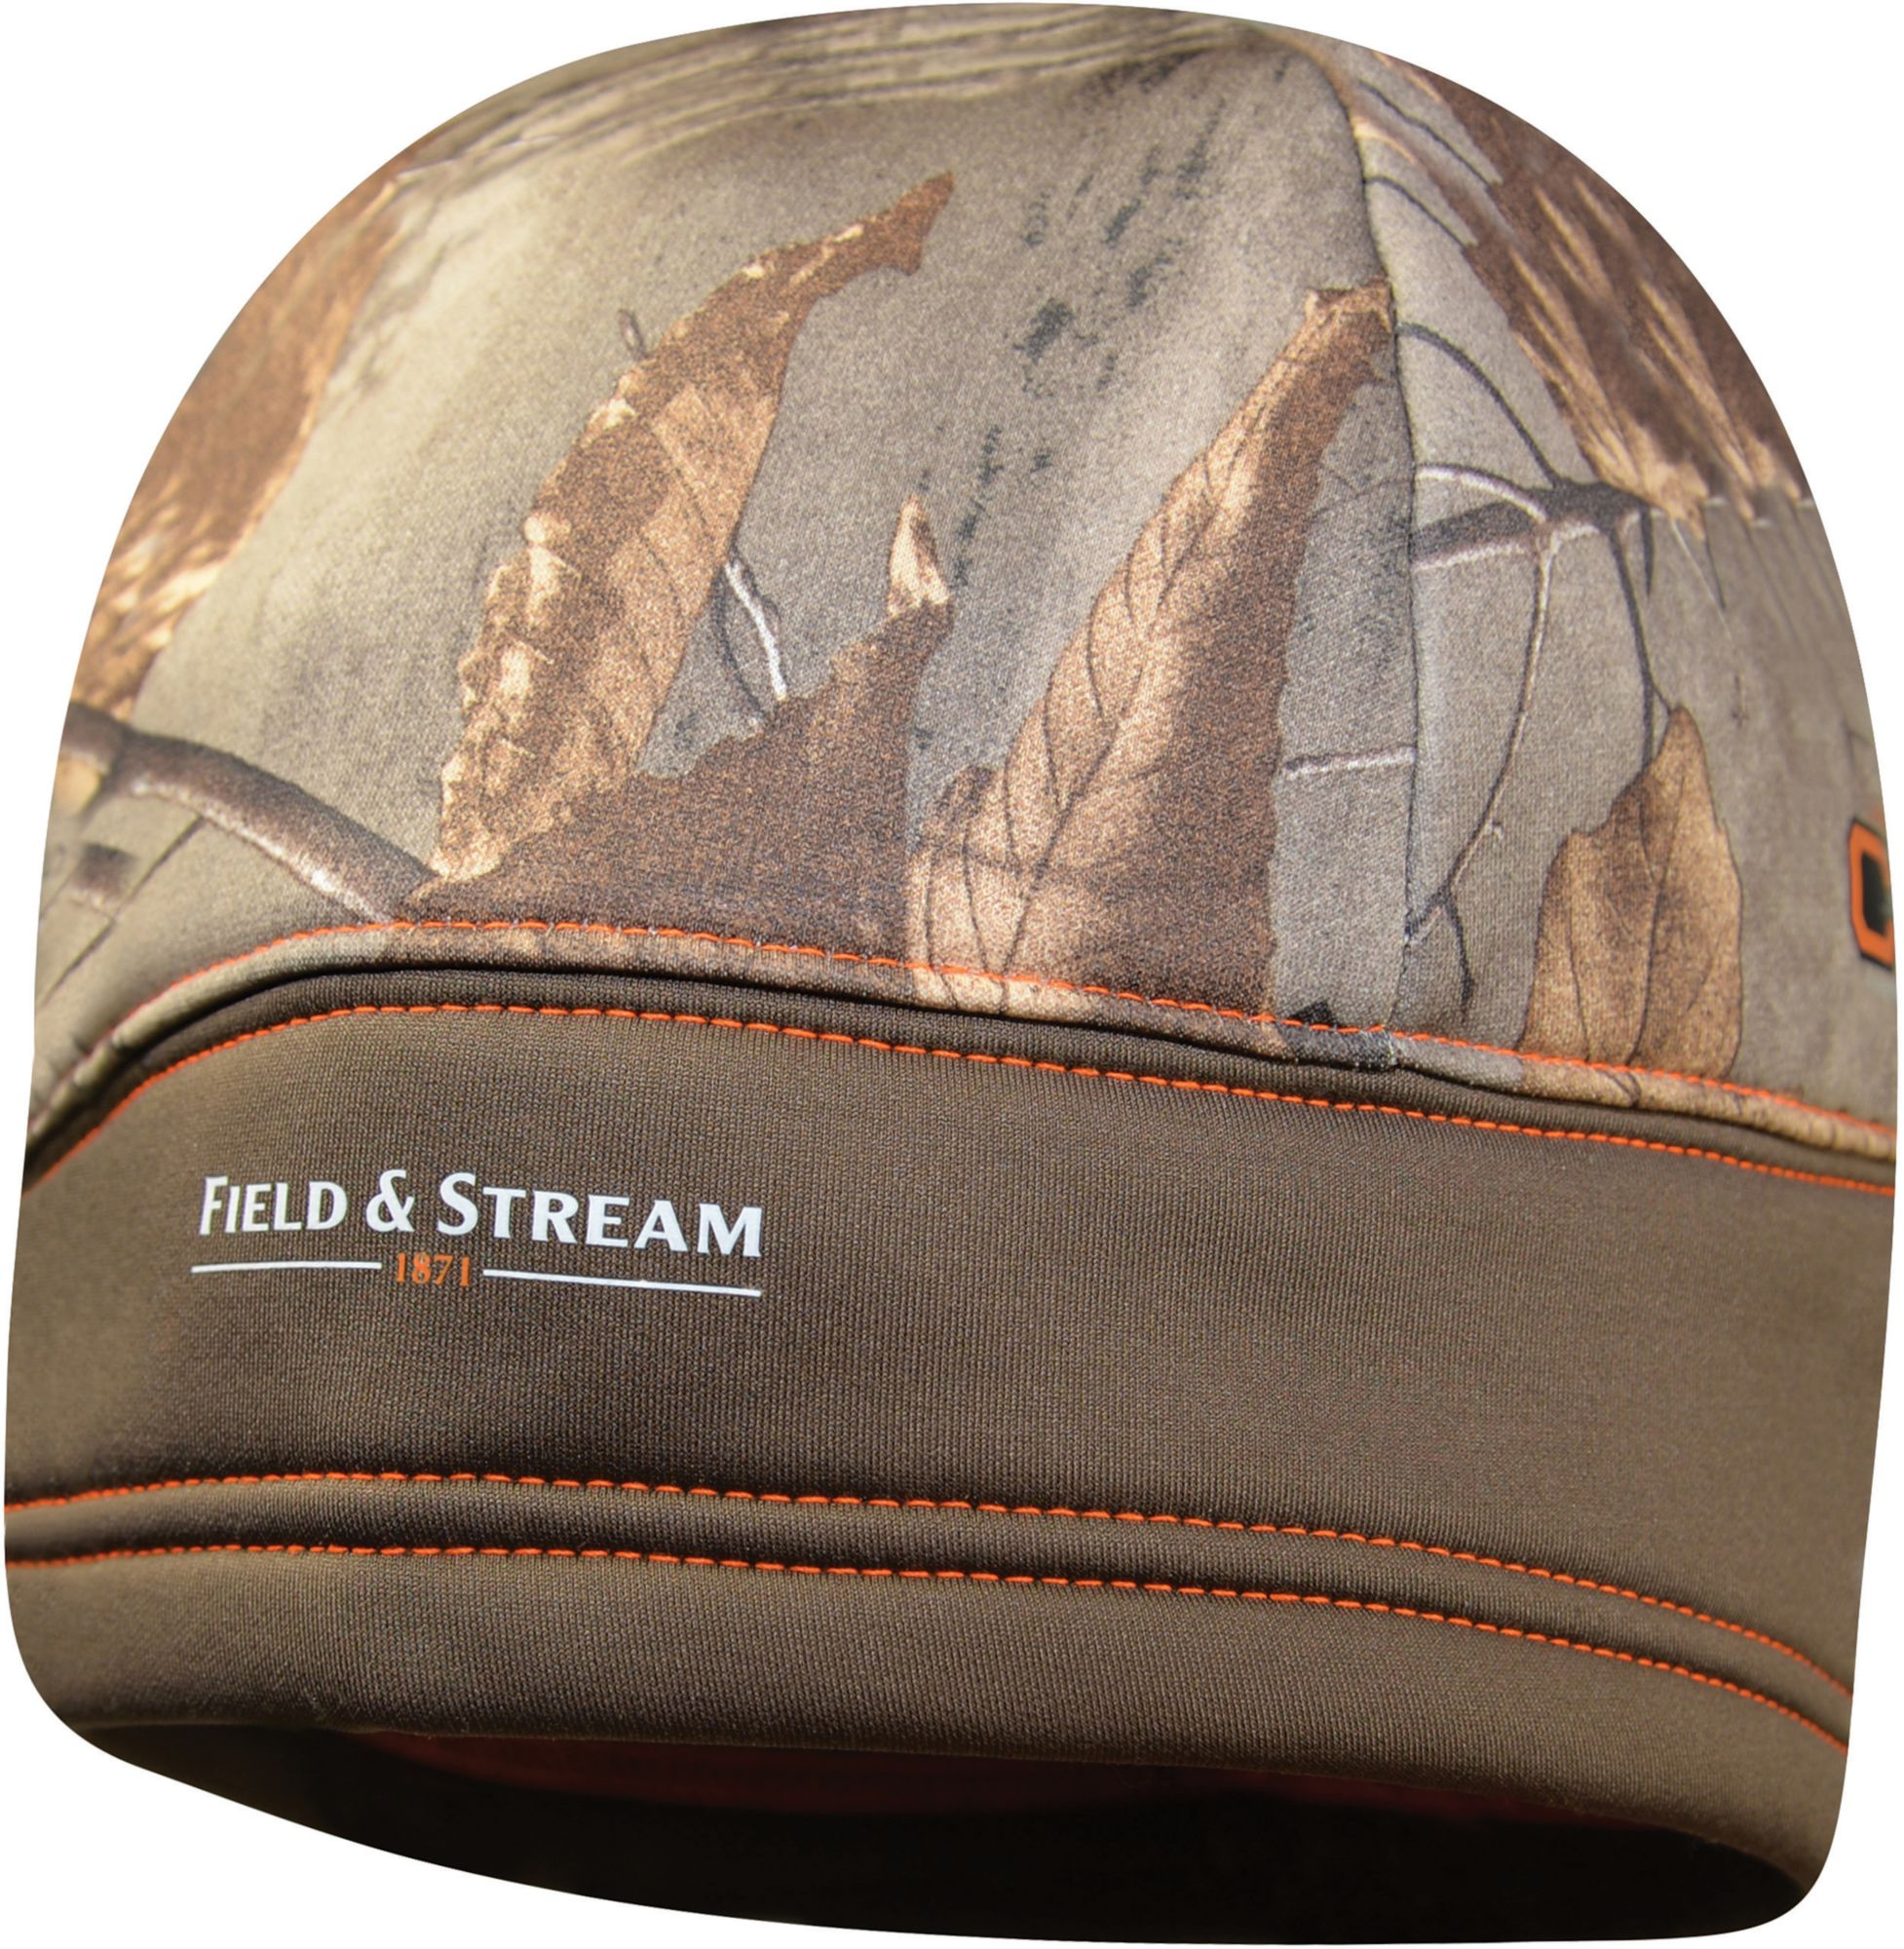 Field & Stream Men's Every Hunt Beanie, Brown thumbnail